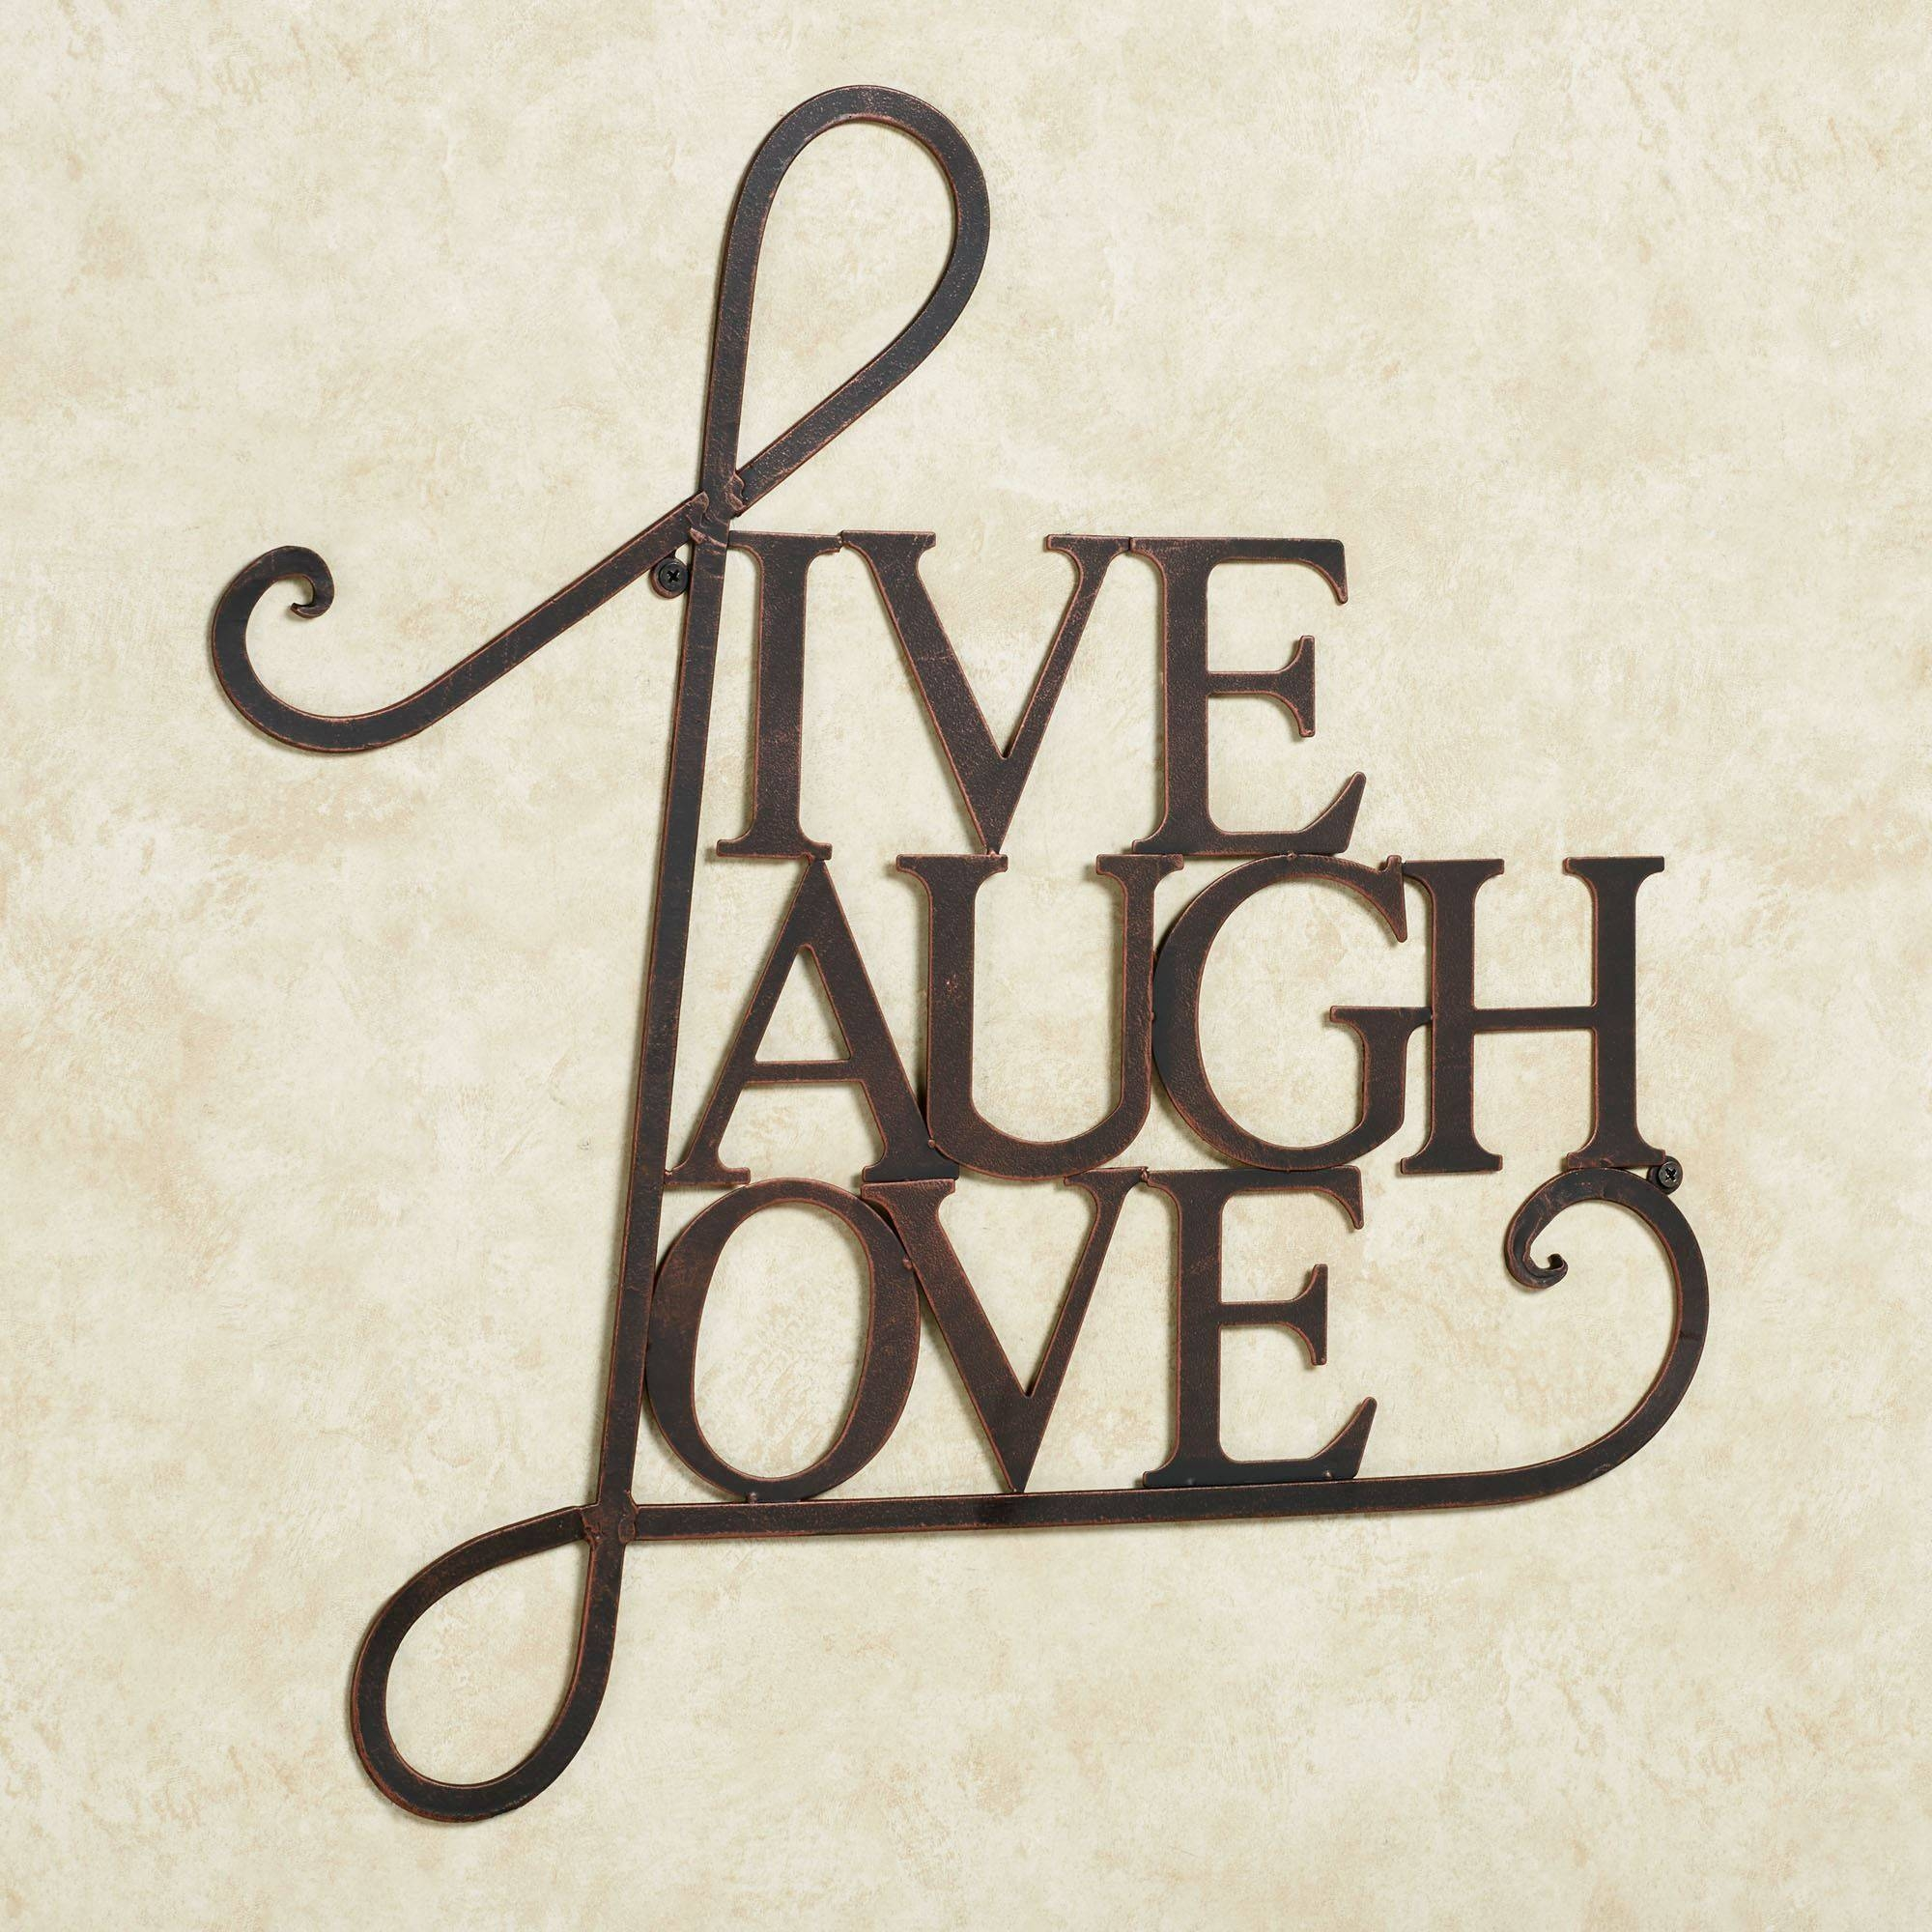 Live Laugh Love Metal Word Wall Art Inside Recent Live Love Laugh Metal Wall Art (View 8 of 25)